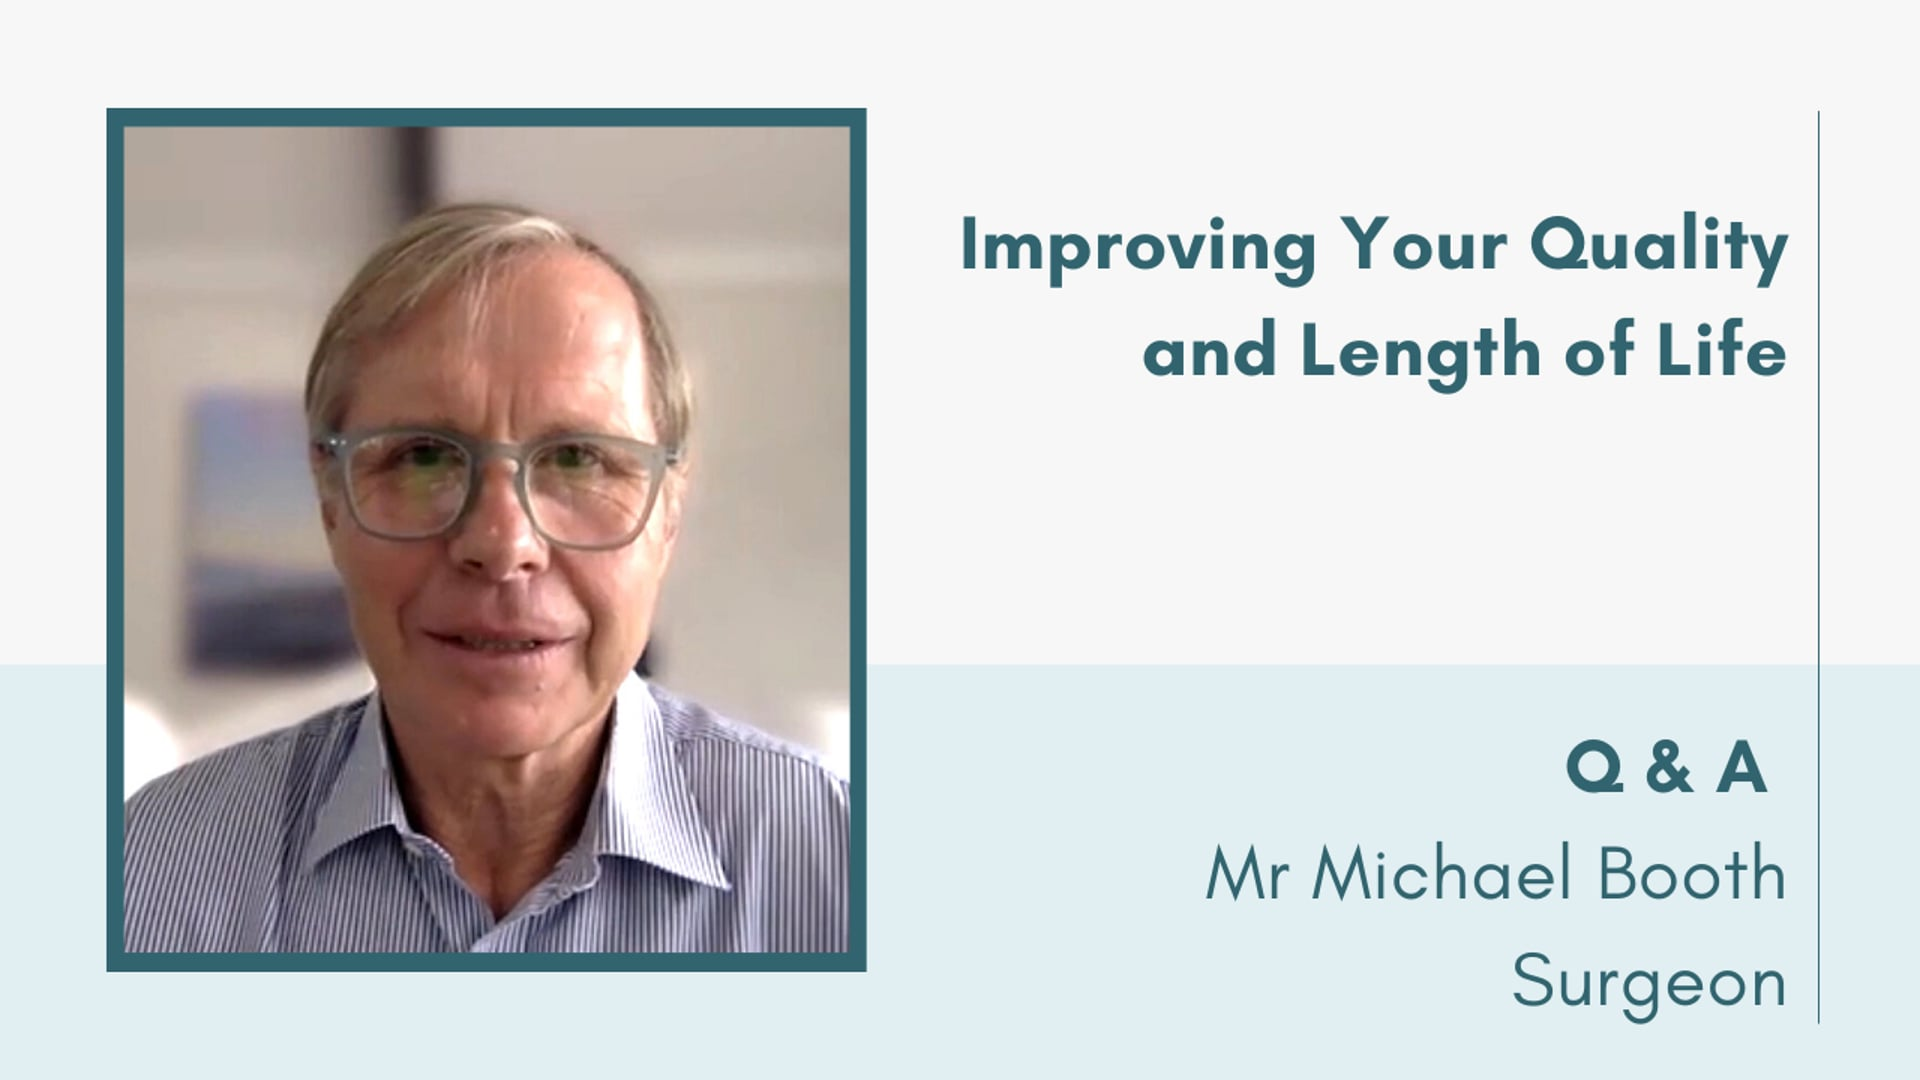 Improving Your Quality and Length of Lfe